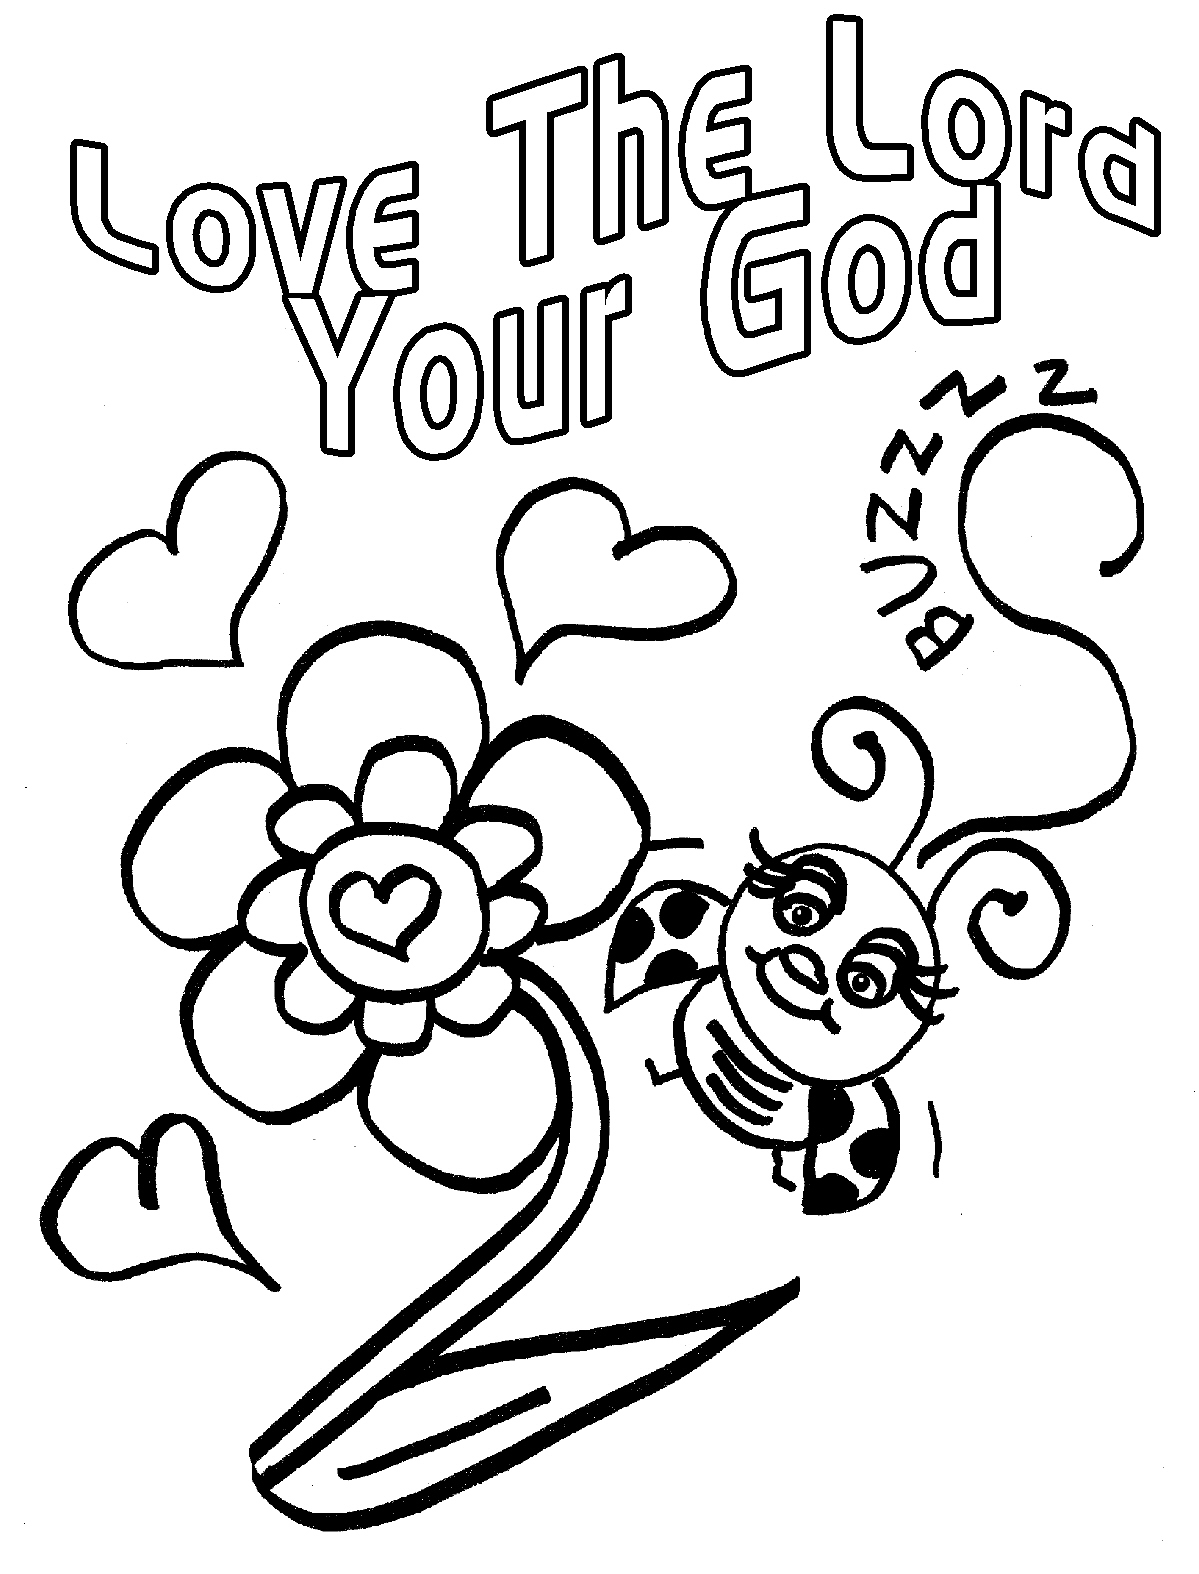 coloring pages about love - love god bible coloring pages coloring pages